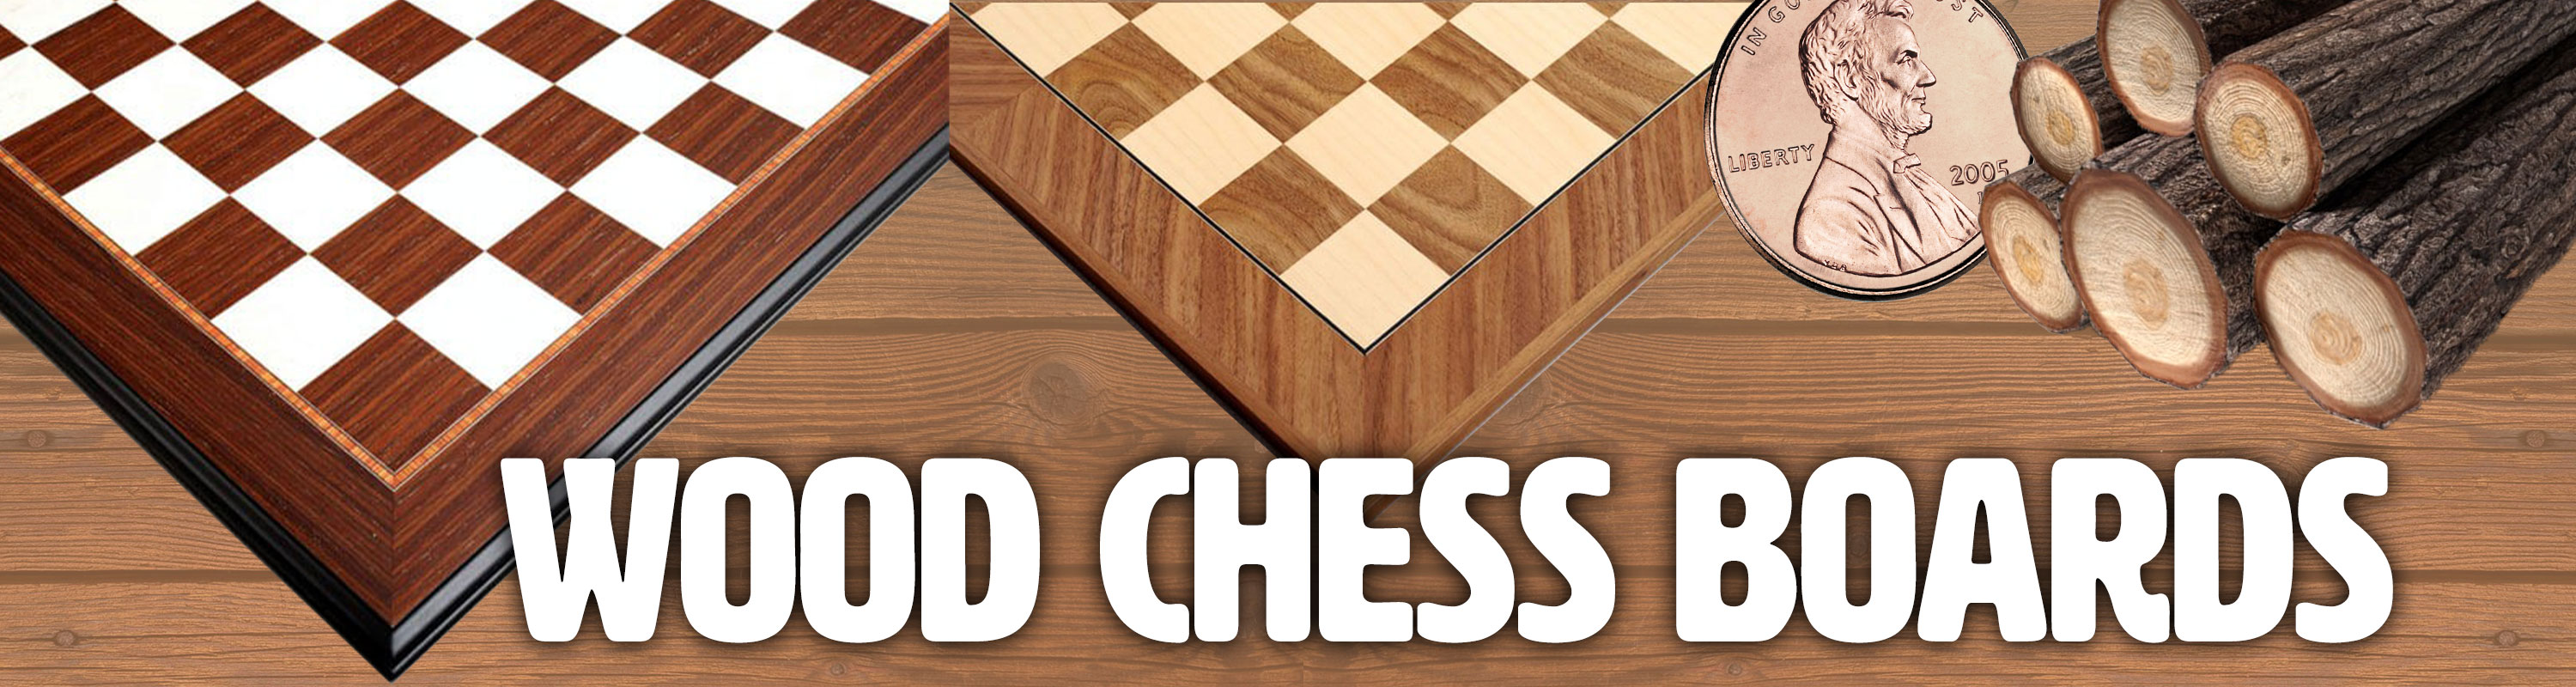 Save 10% on Wood Chess Boards